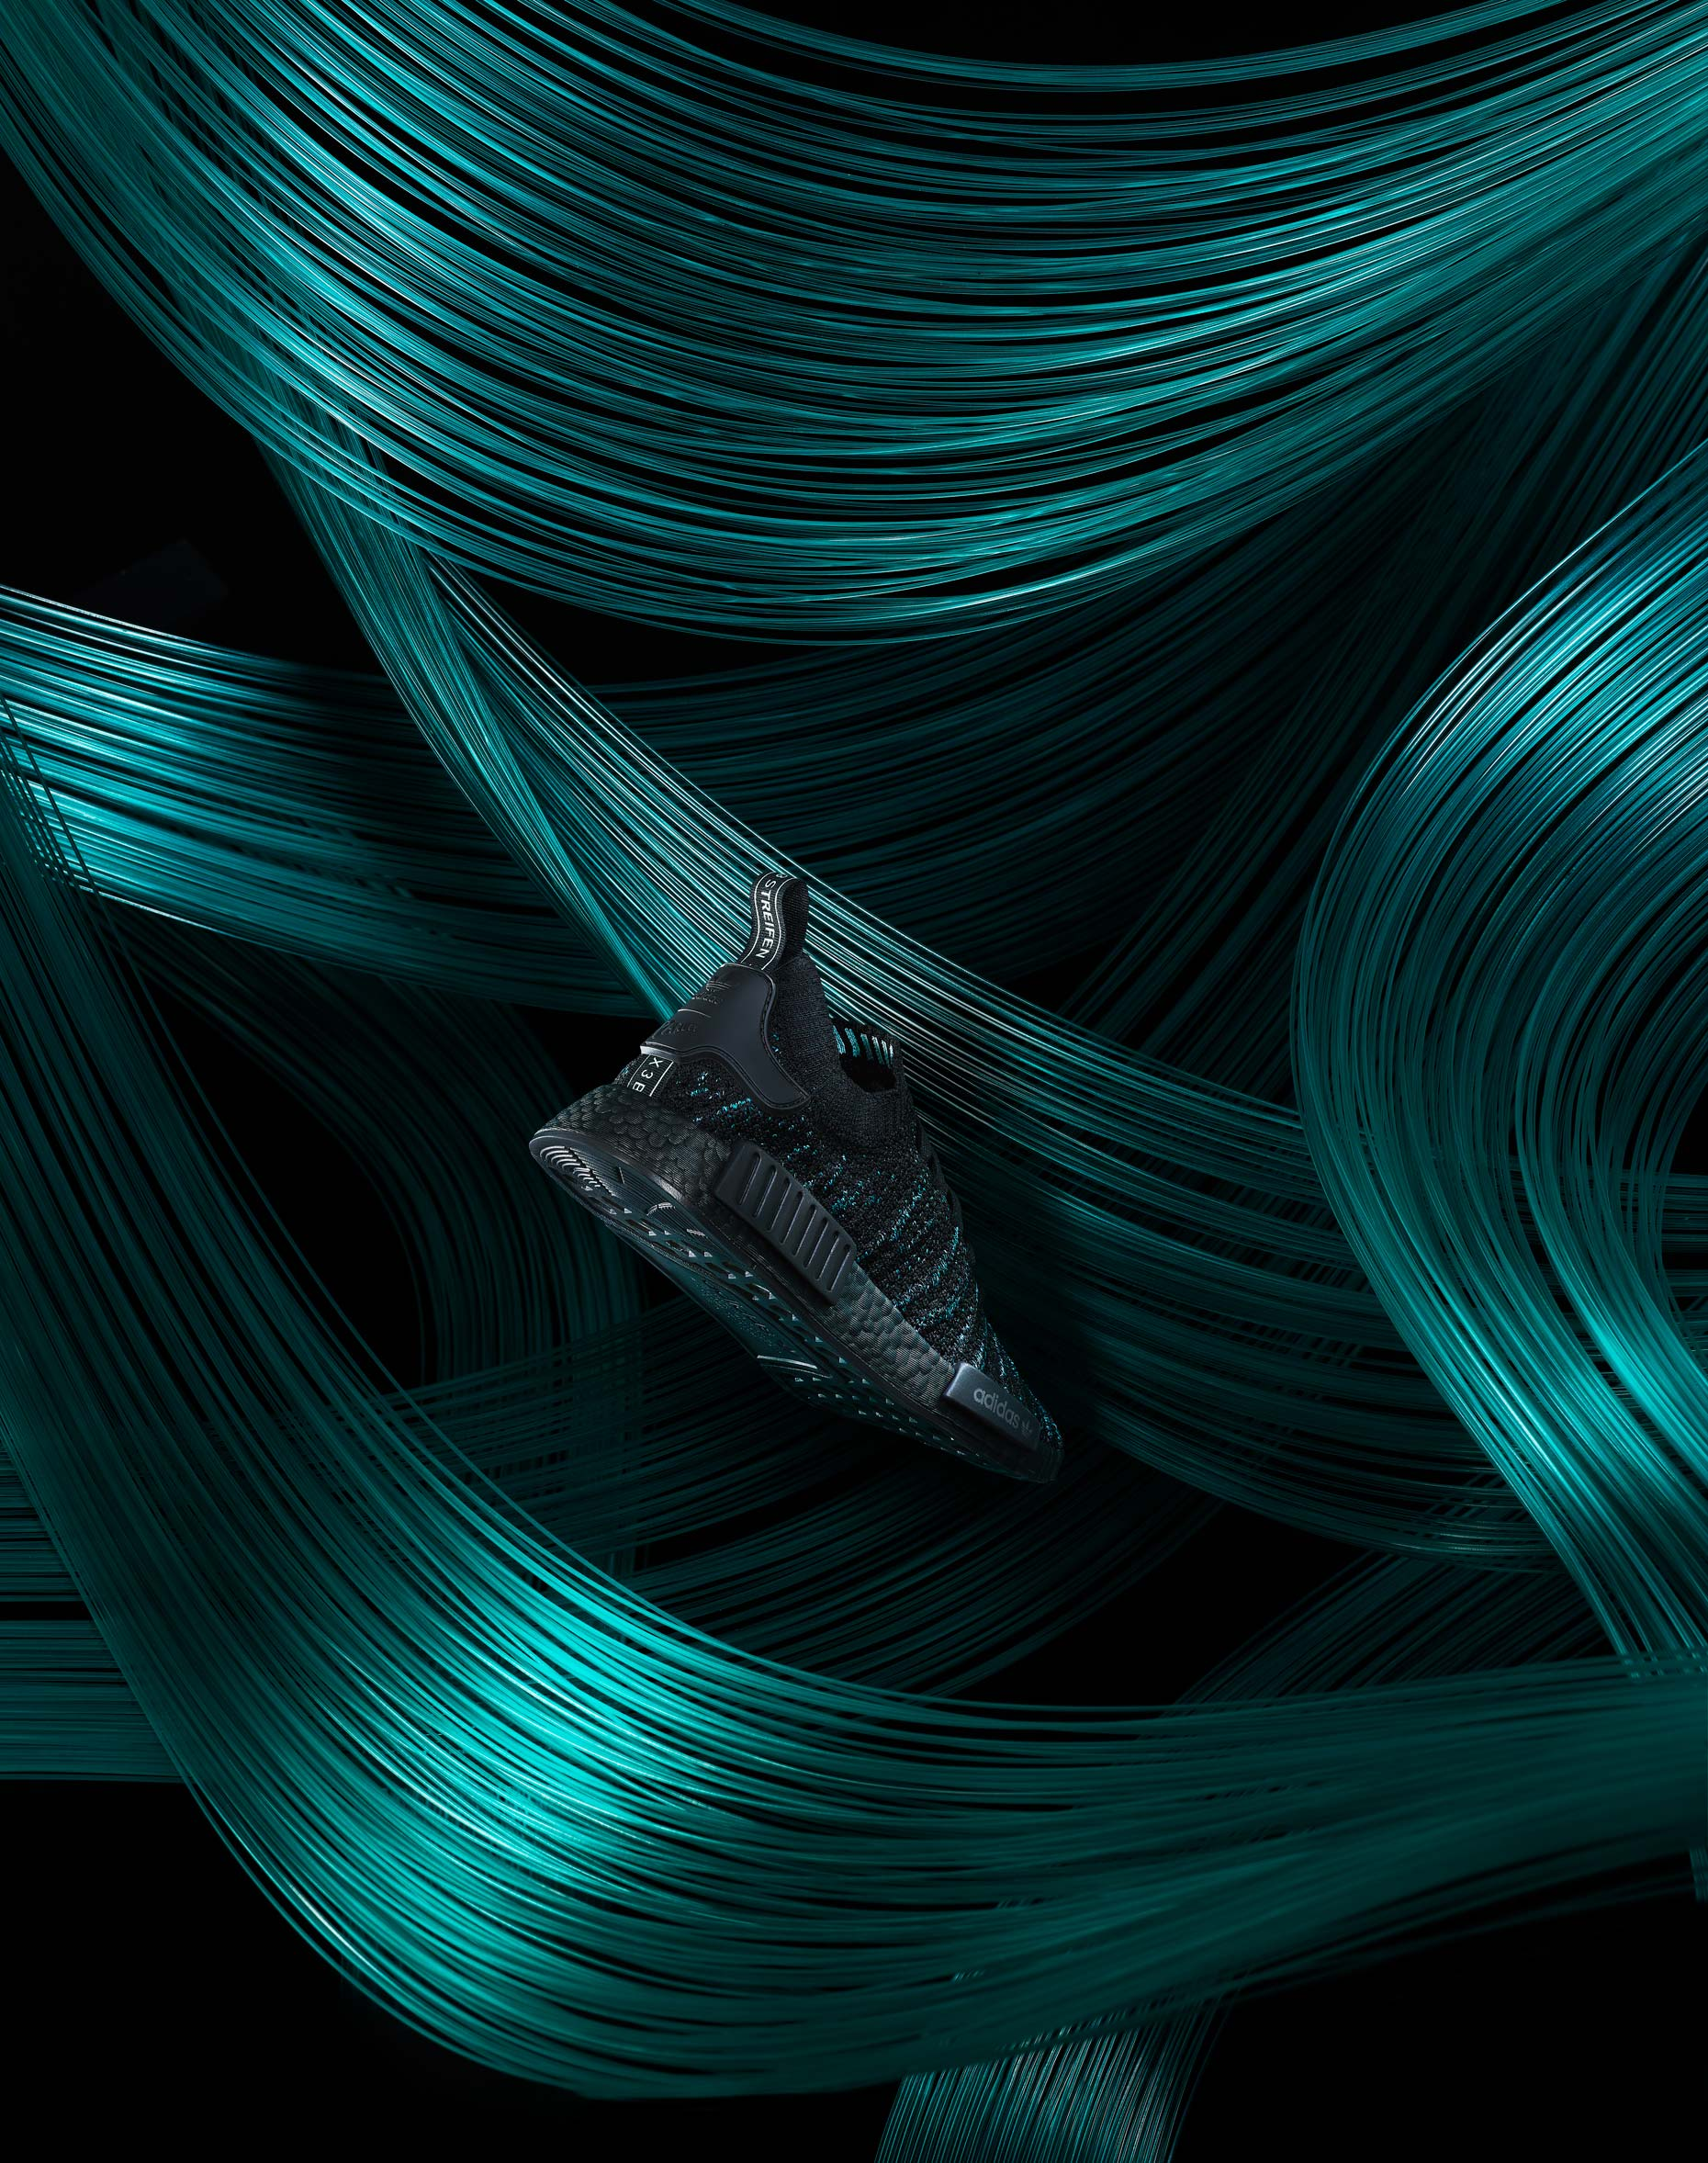 Adidas Parley shoe in front of hundreds of strings of green thread, photographed by product and still life photographer Adrian Mueller New York